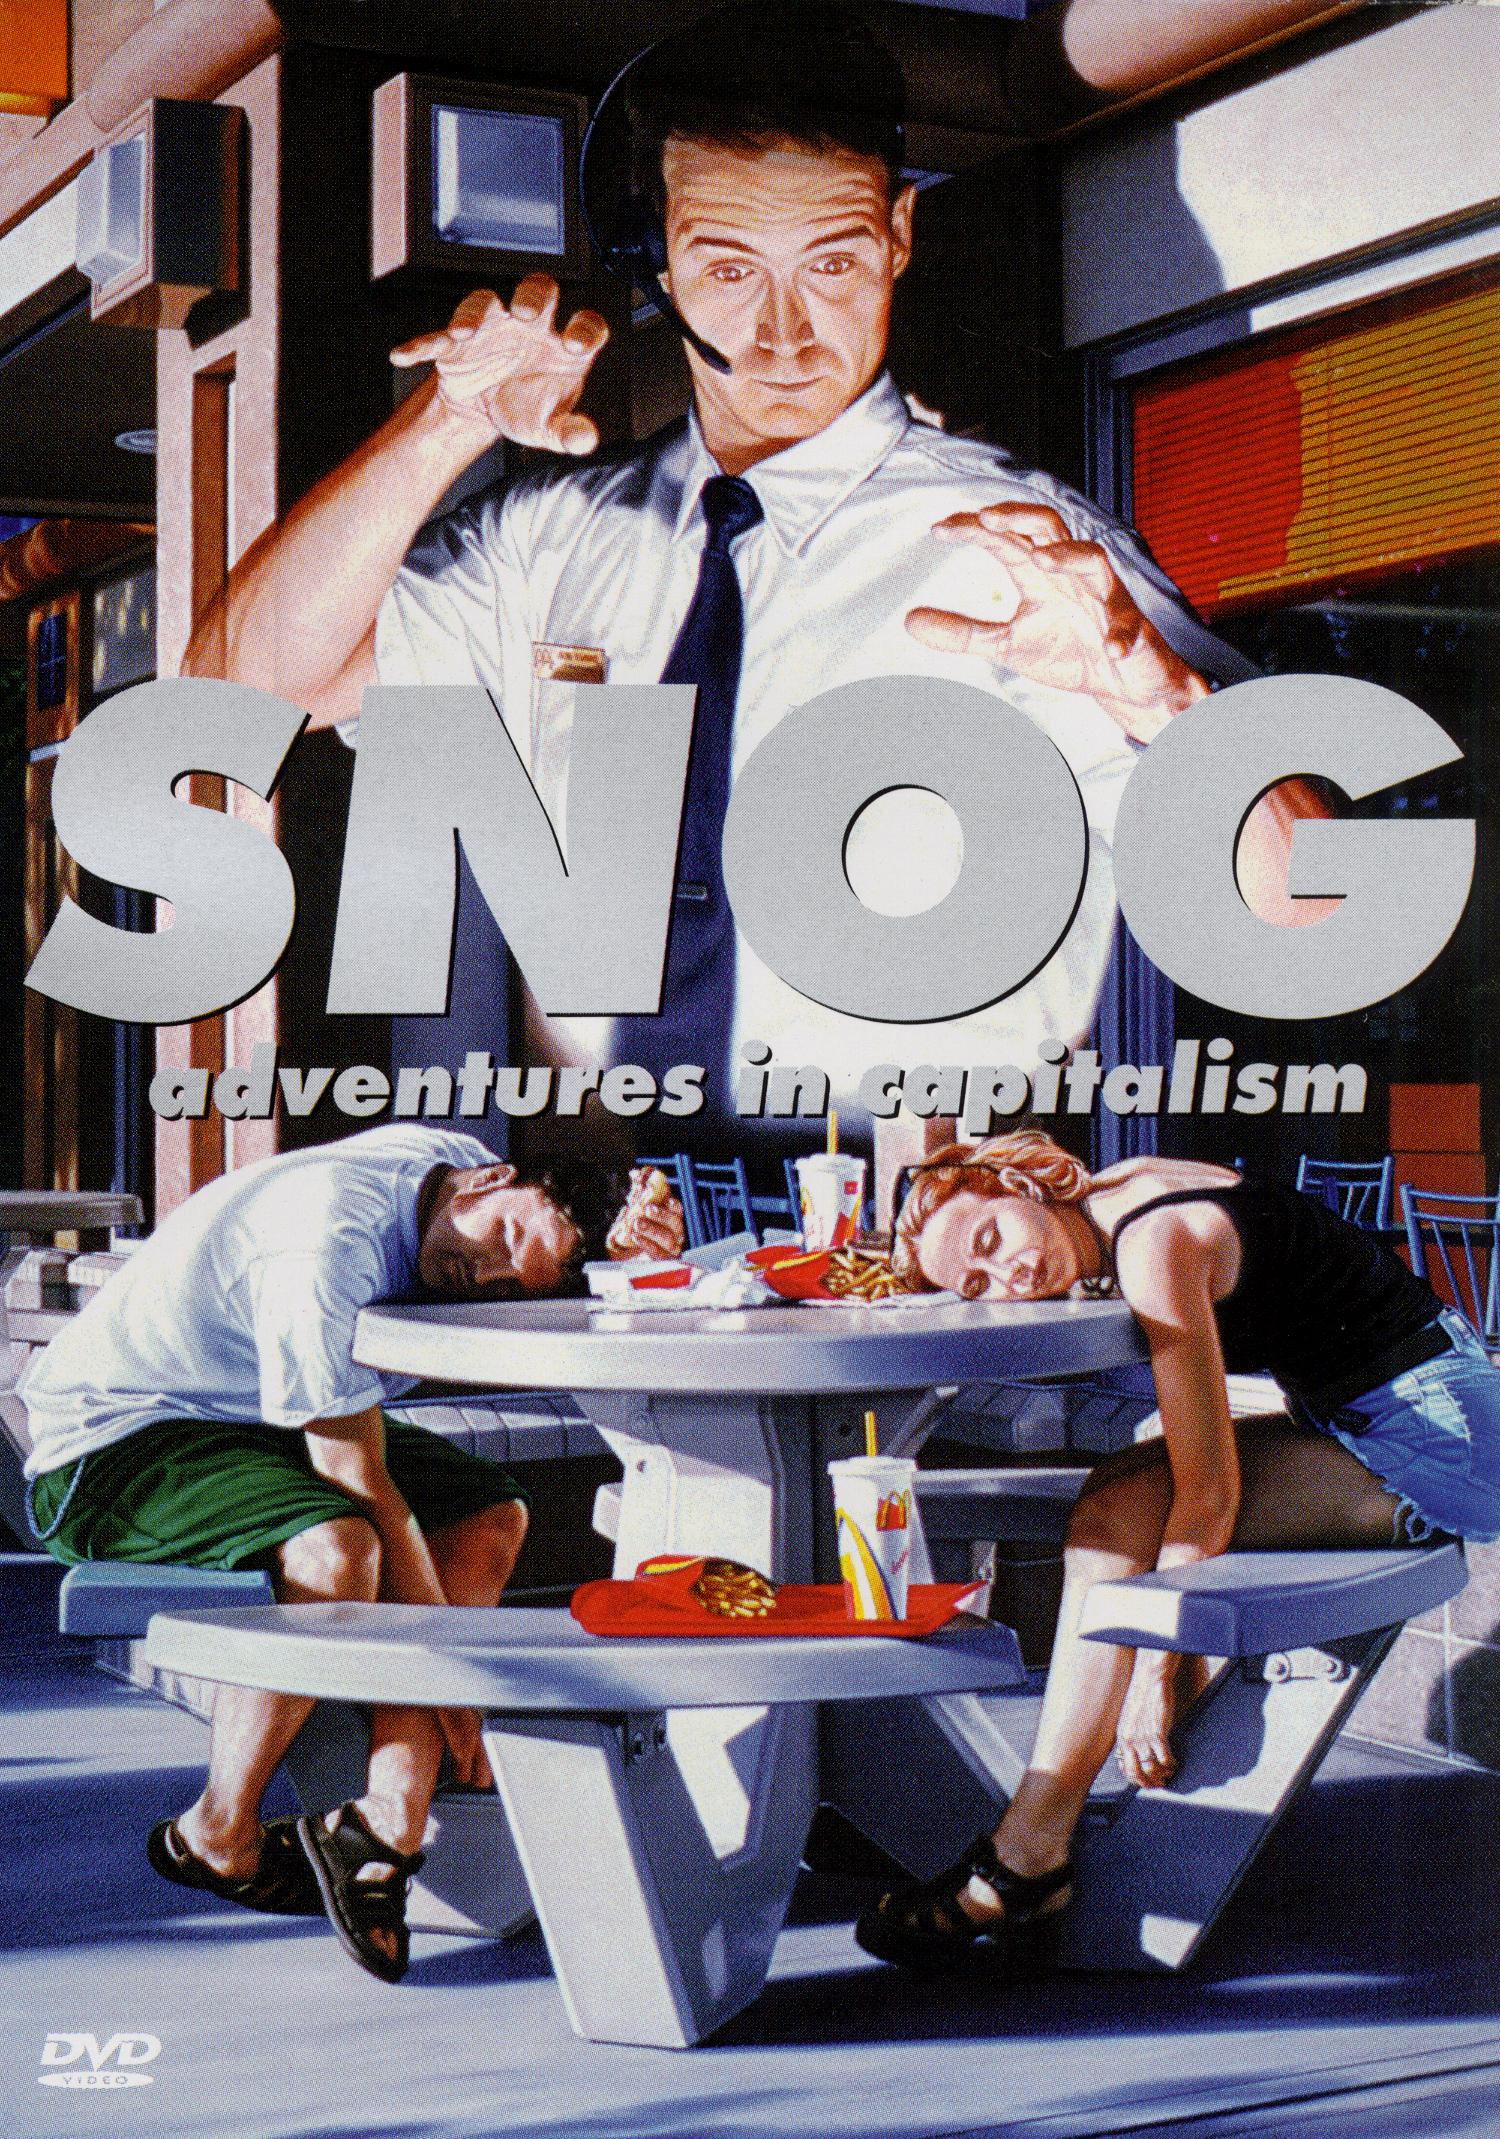 Snog: Adventures in Capitalism